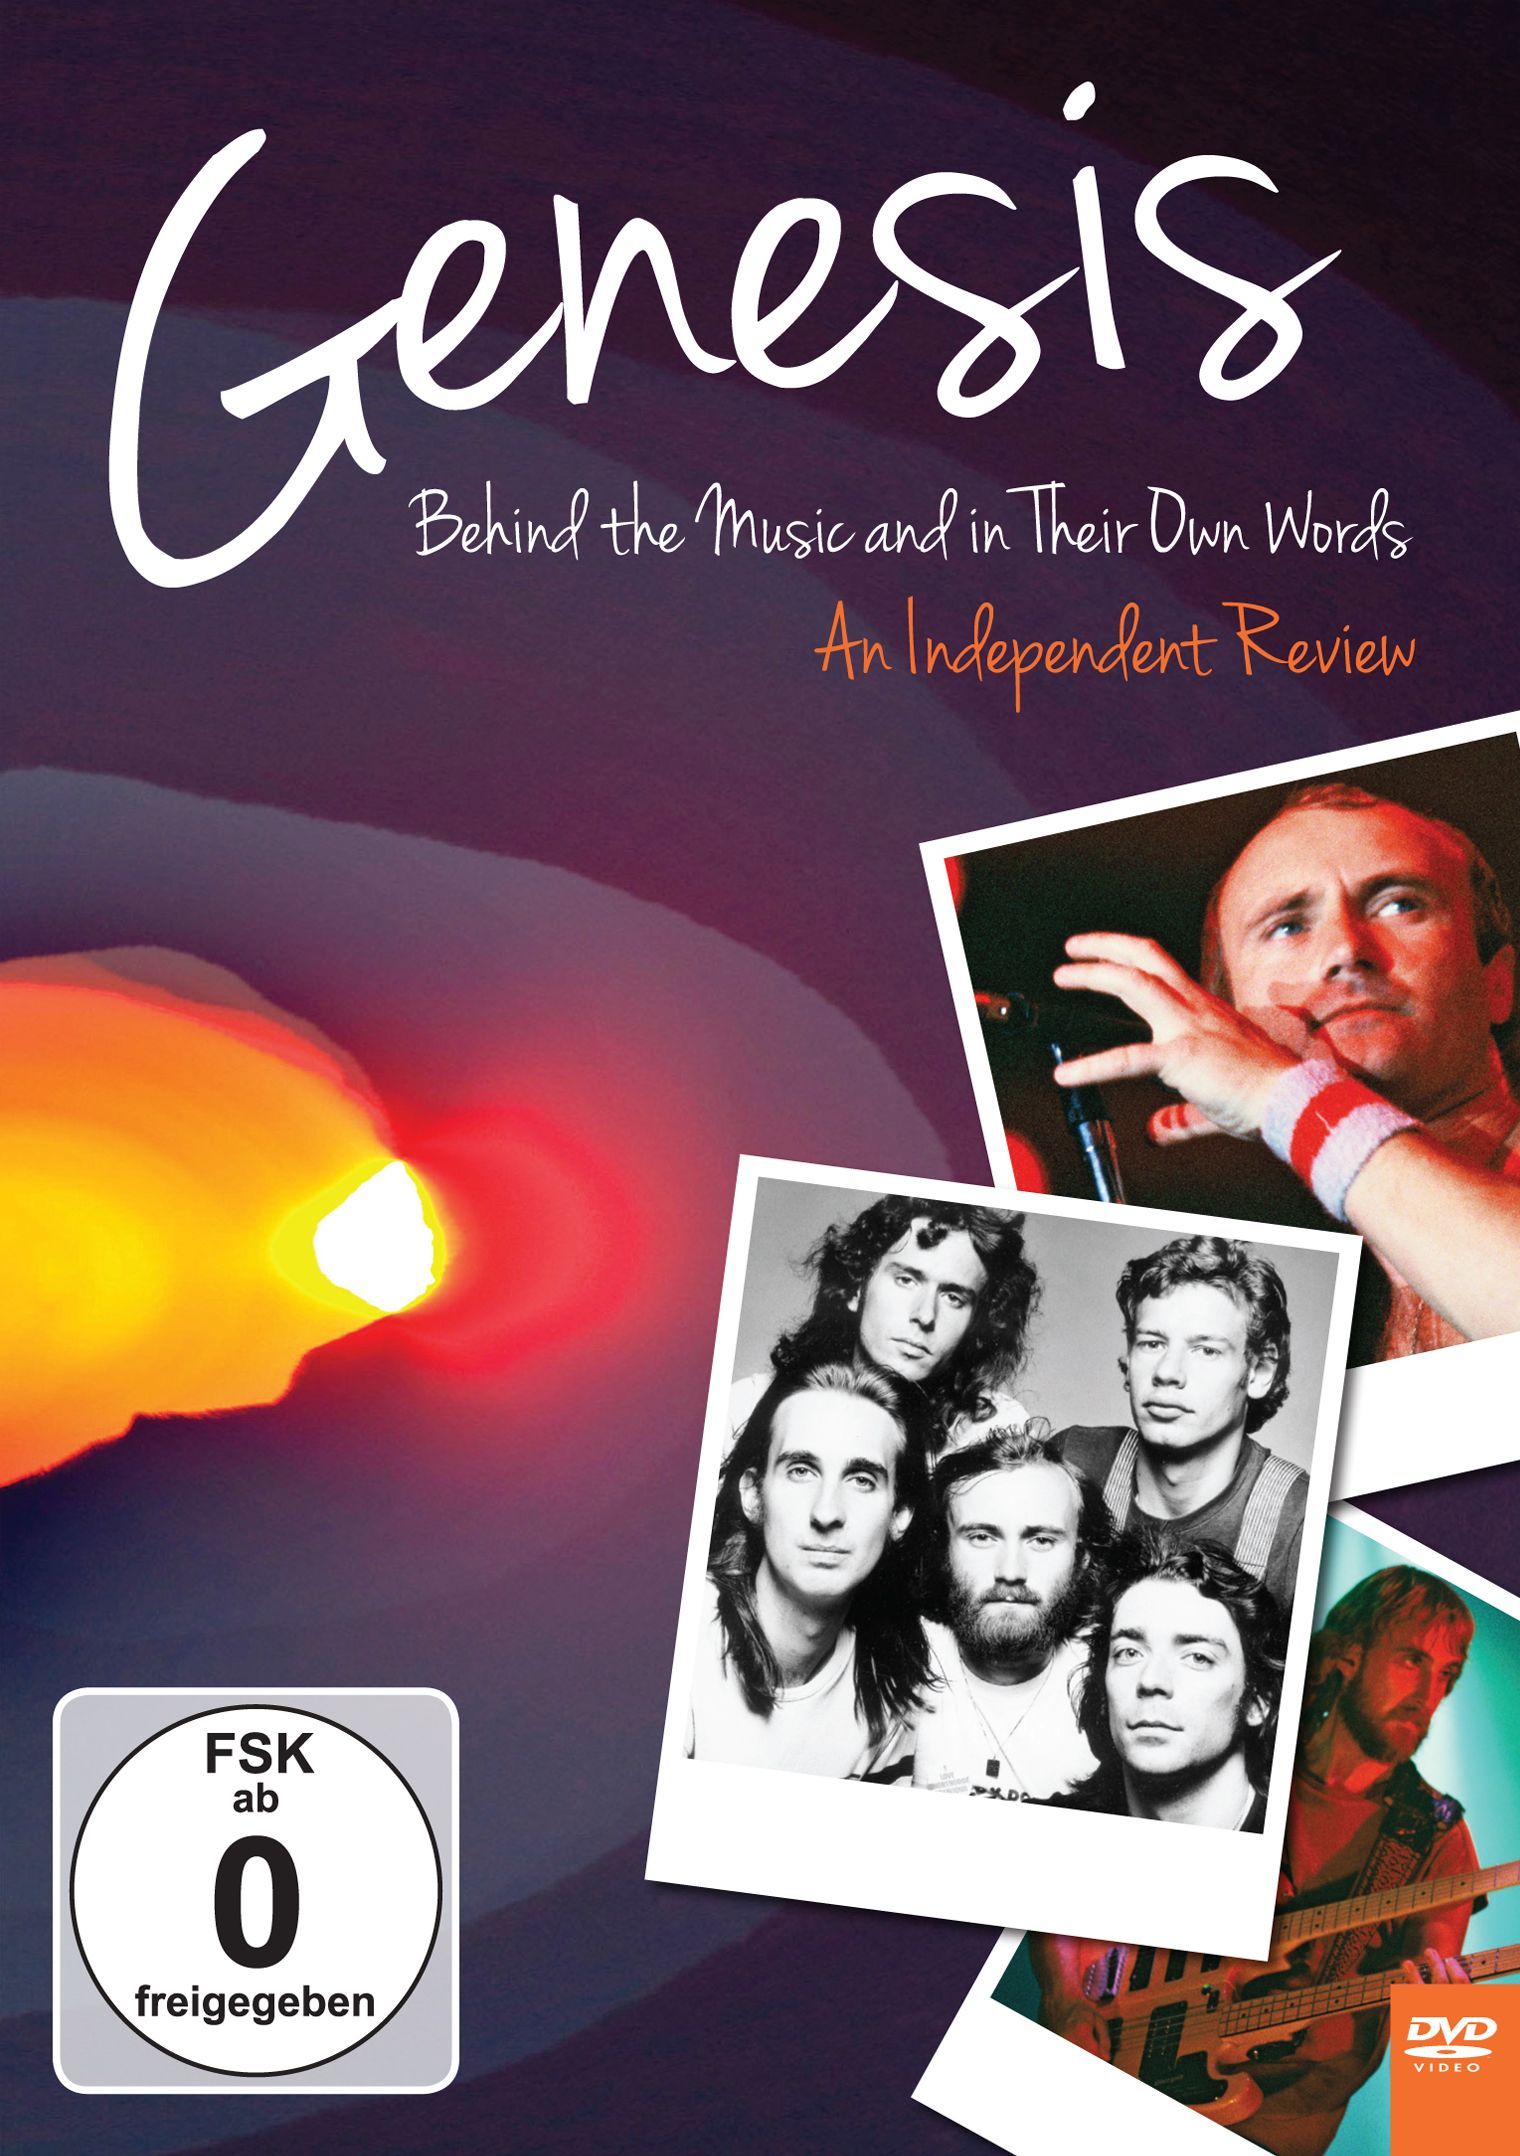 Genesis: Behind the Music and in Their Own Words